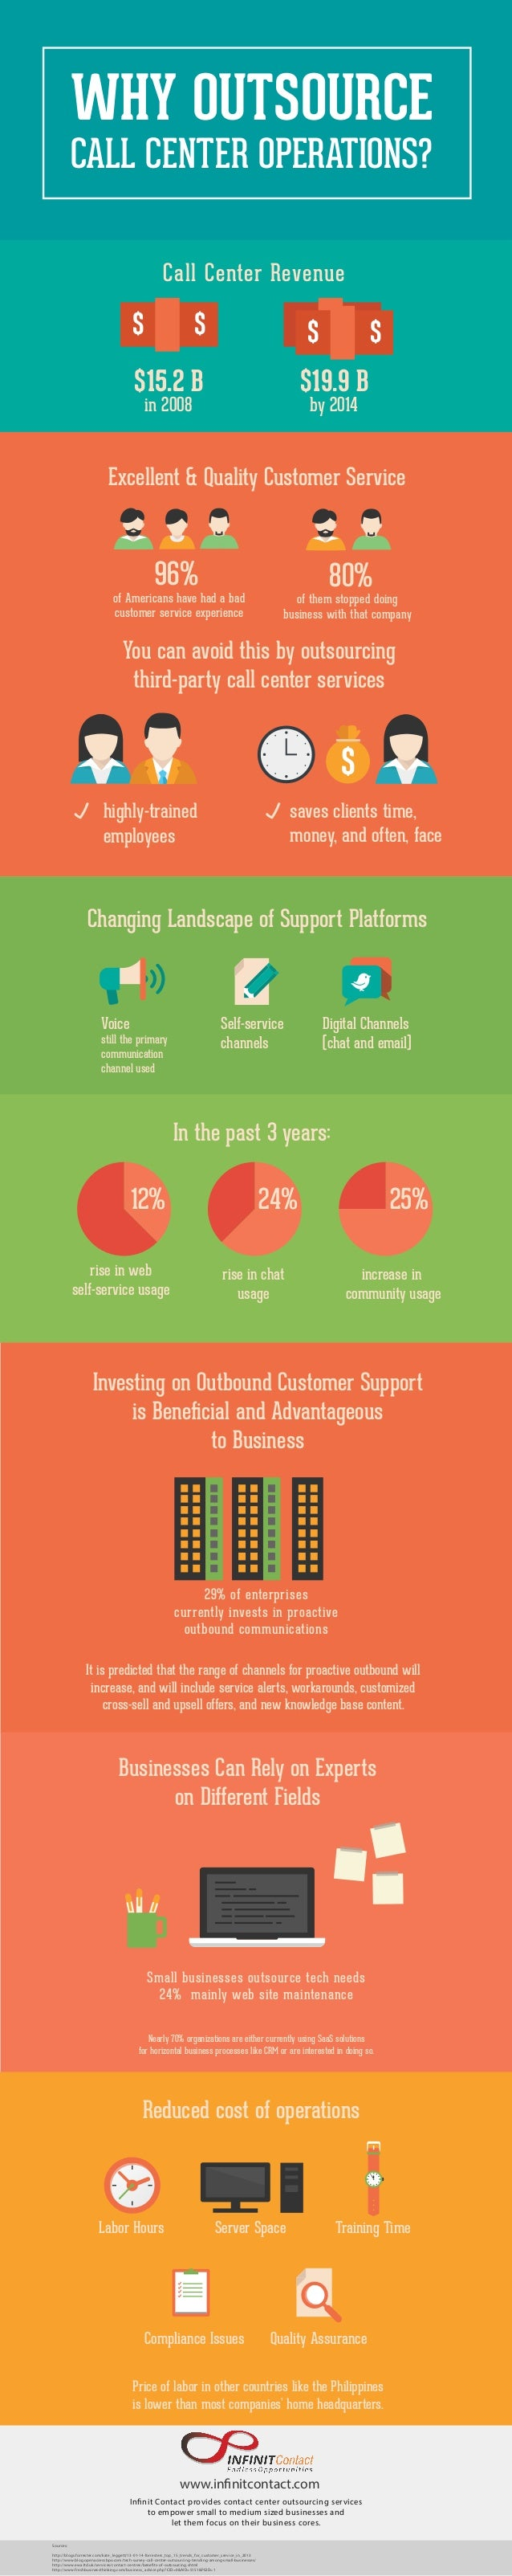 Outsourced Call Center Services : Why outsource call center operations infographic